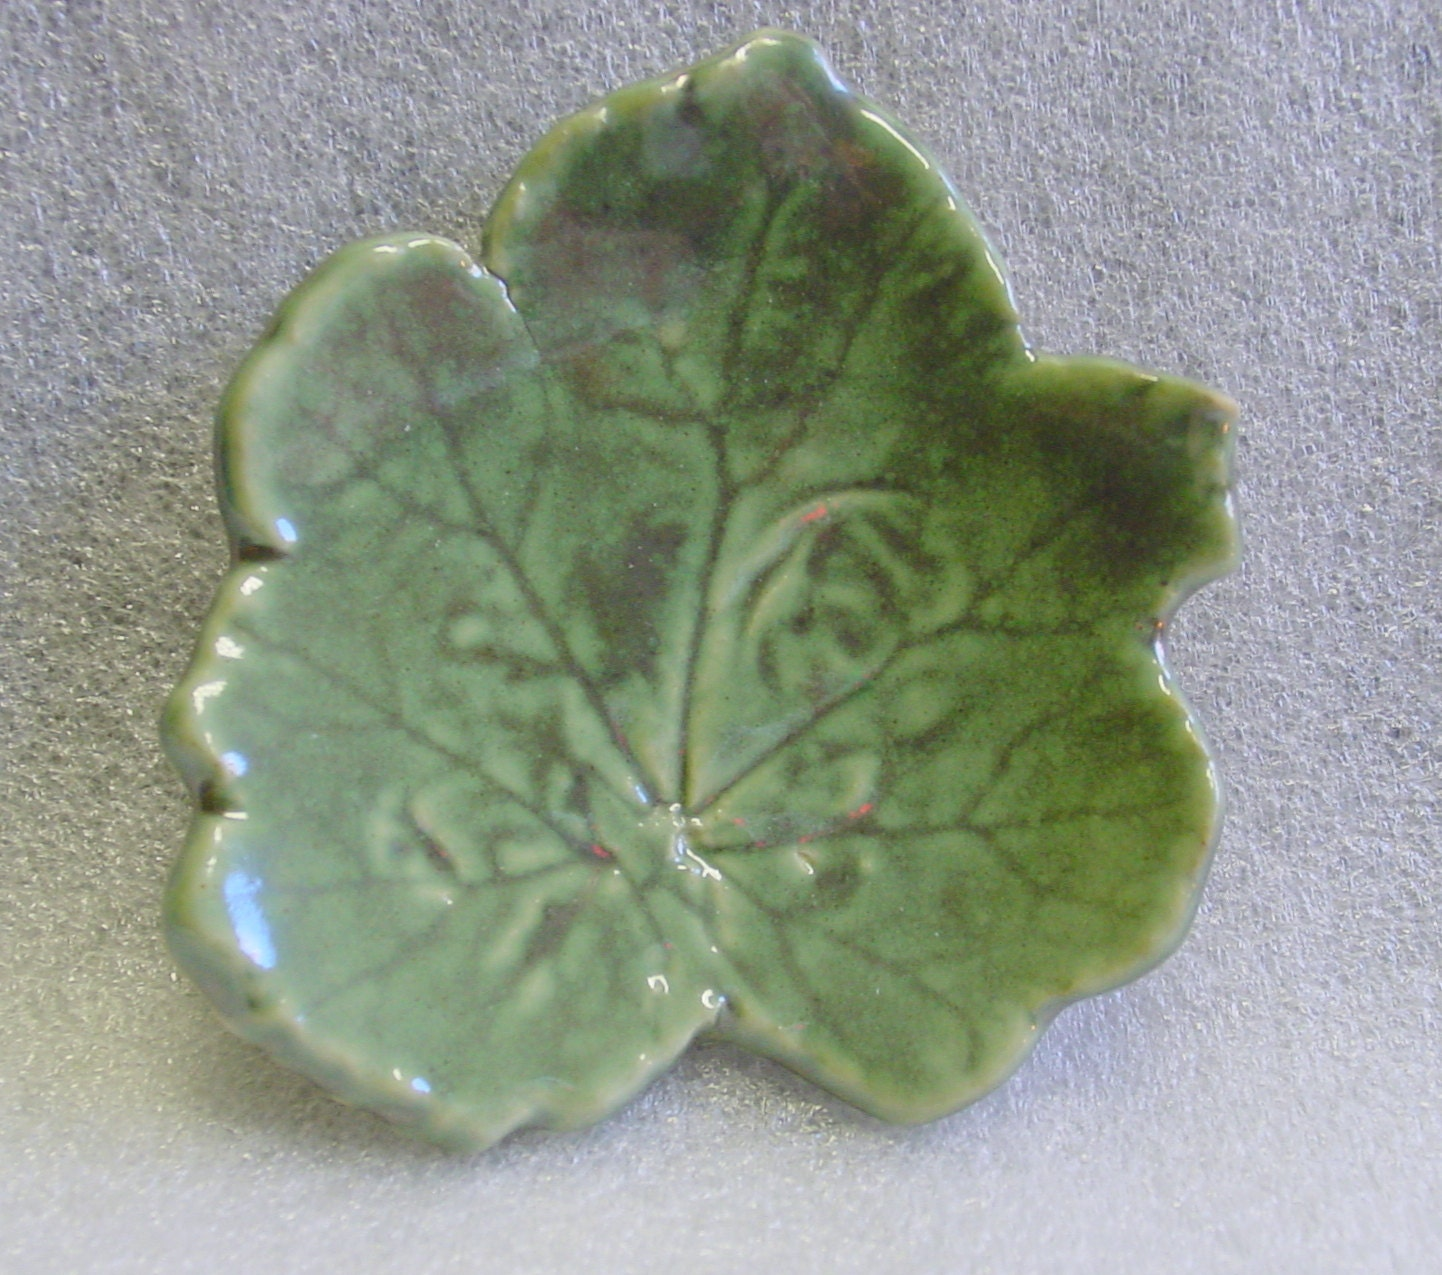 Green Handmade Pottery Leaf Trinket Tray, Spoon Rest, Candle or Tea Bag Holder